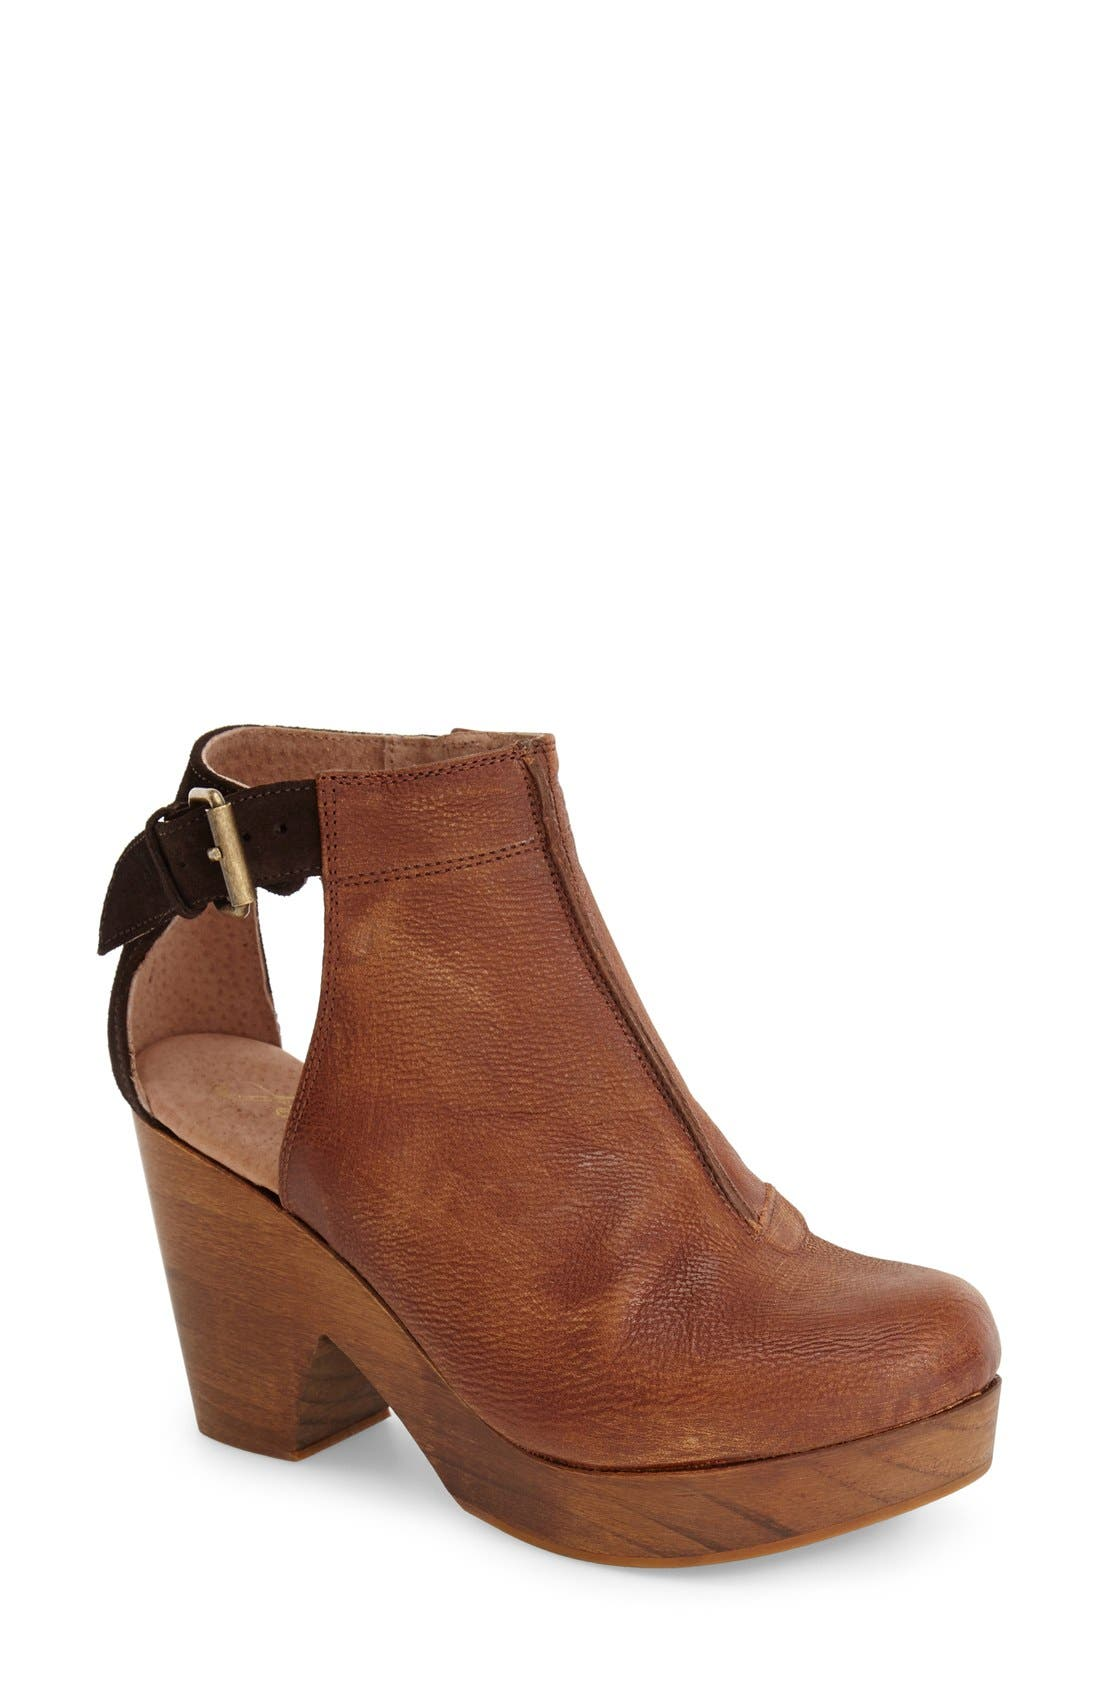 FREE PEOPLE 'Amber Orchard' Cutout Bootie